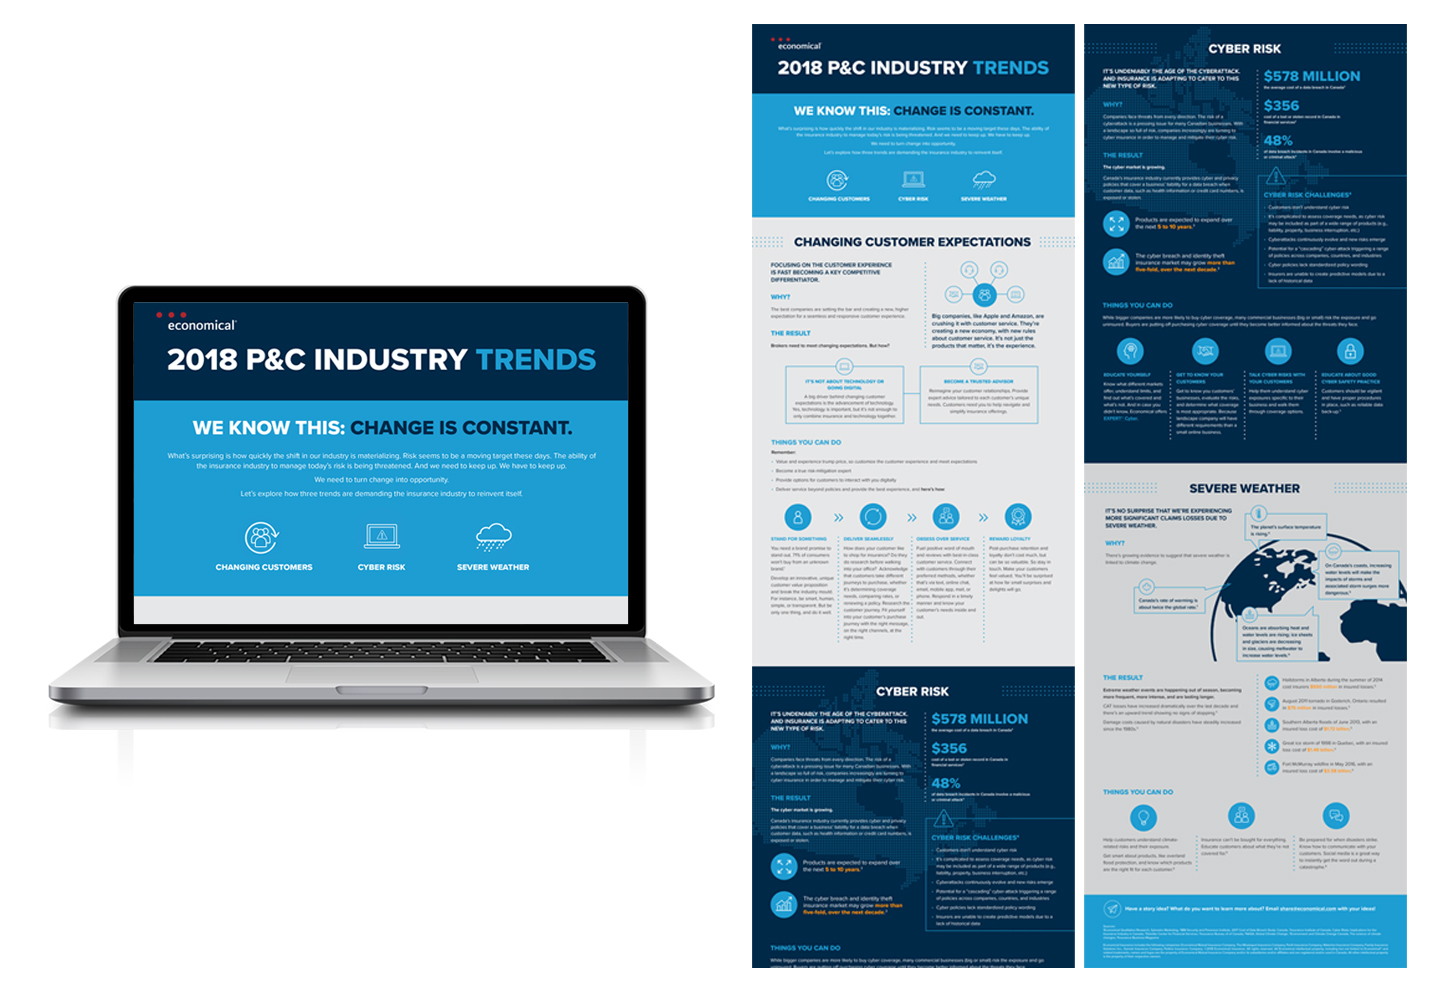 Industry Trends Infographic